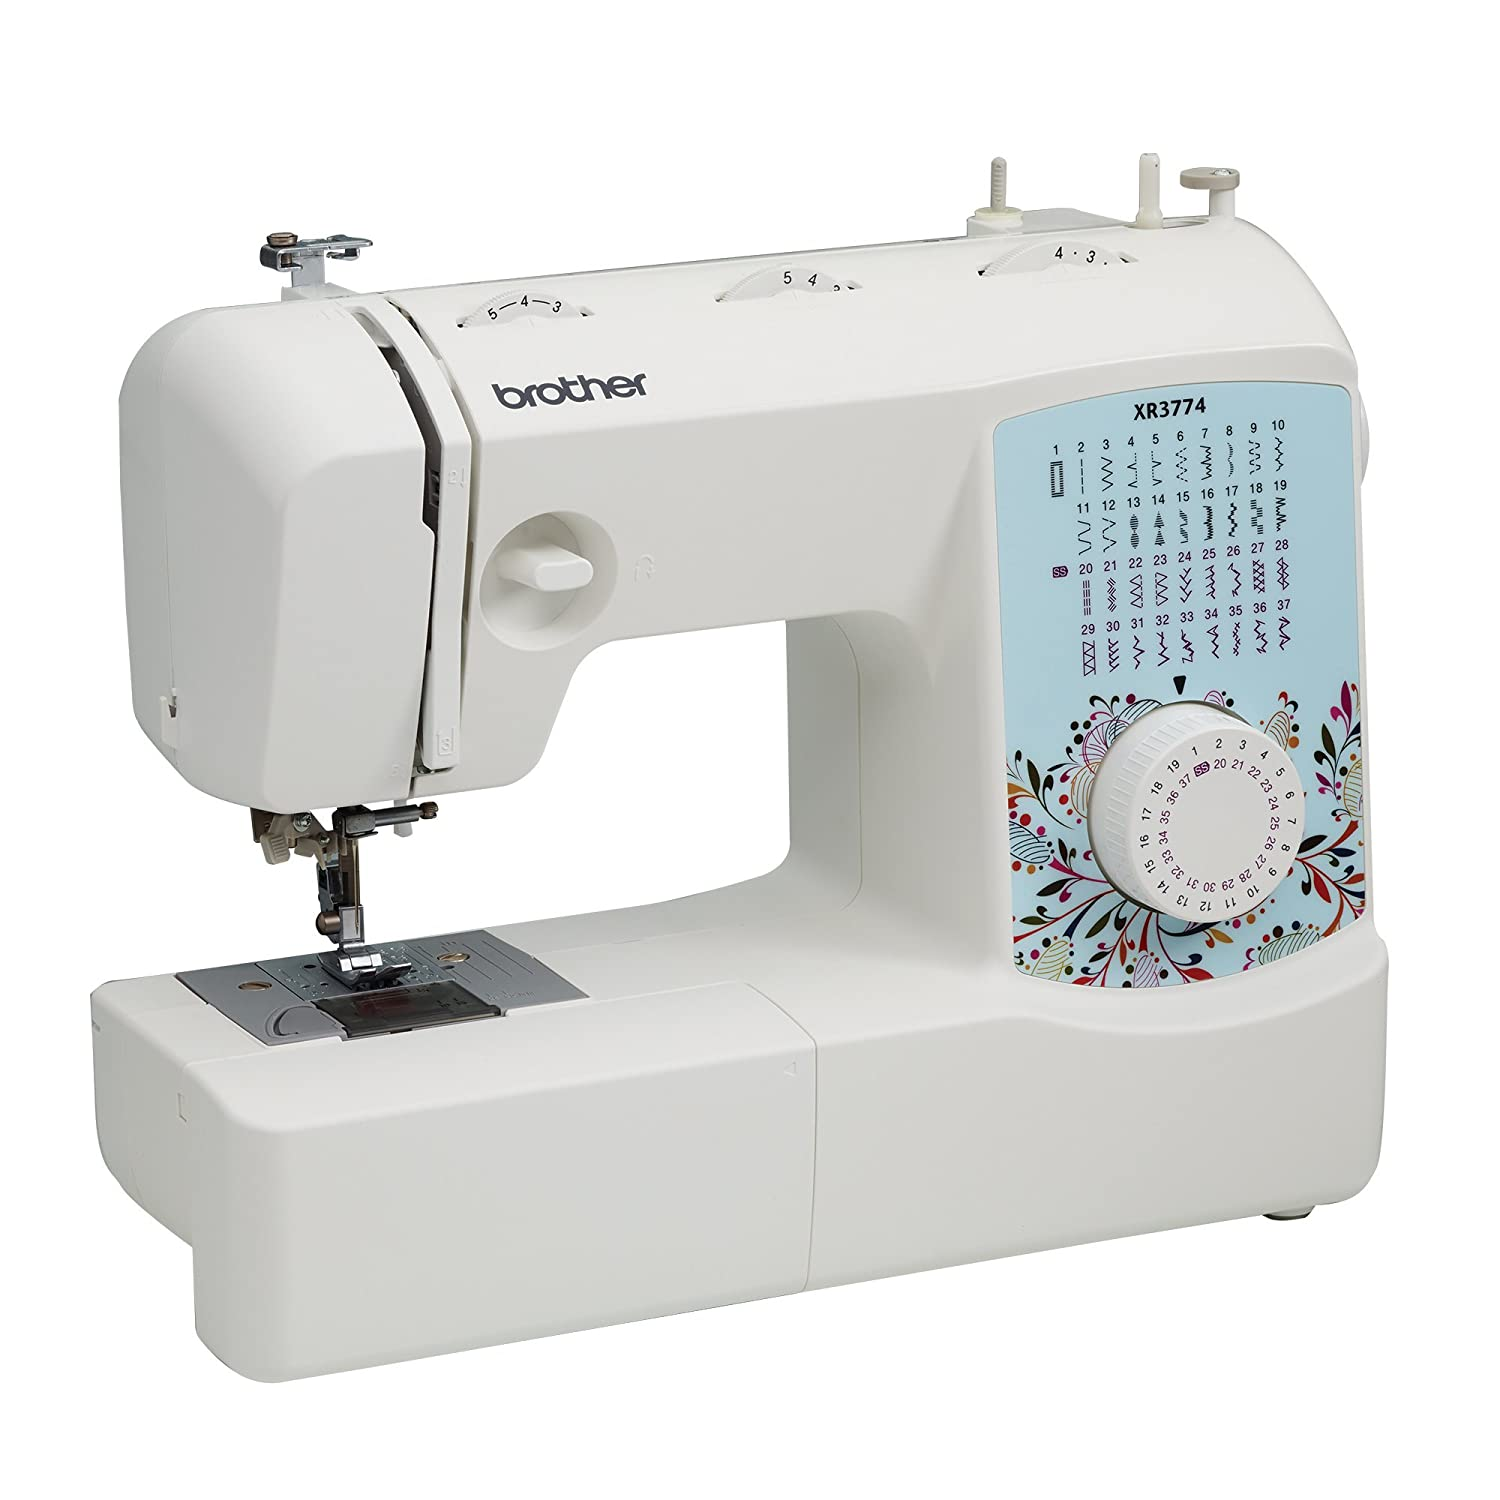 Amazon.com: Brother XR3774 Full-Featured Sewing and Quilting Machine with  37 Stitches, 8 Sewing Feet, Wide Table, and Instructional DVD